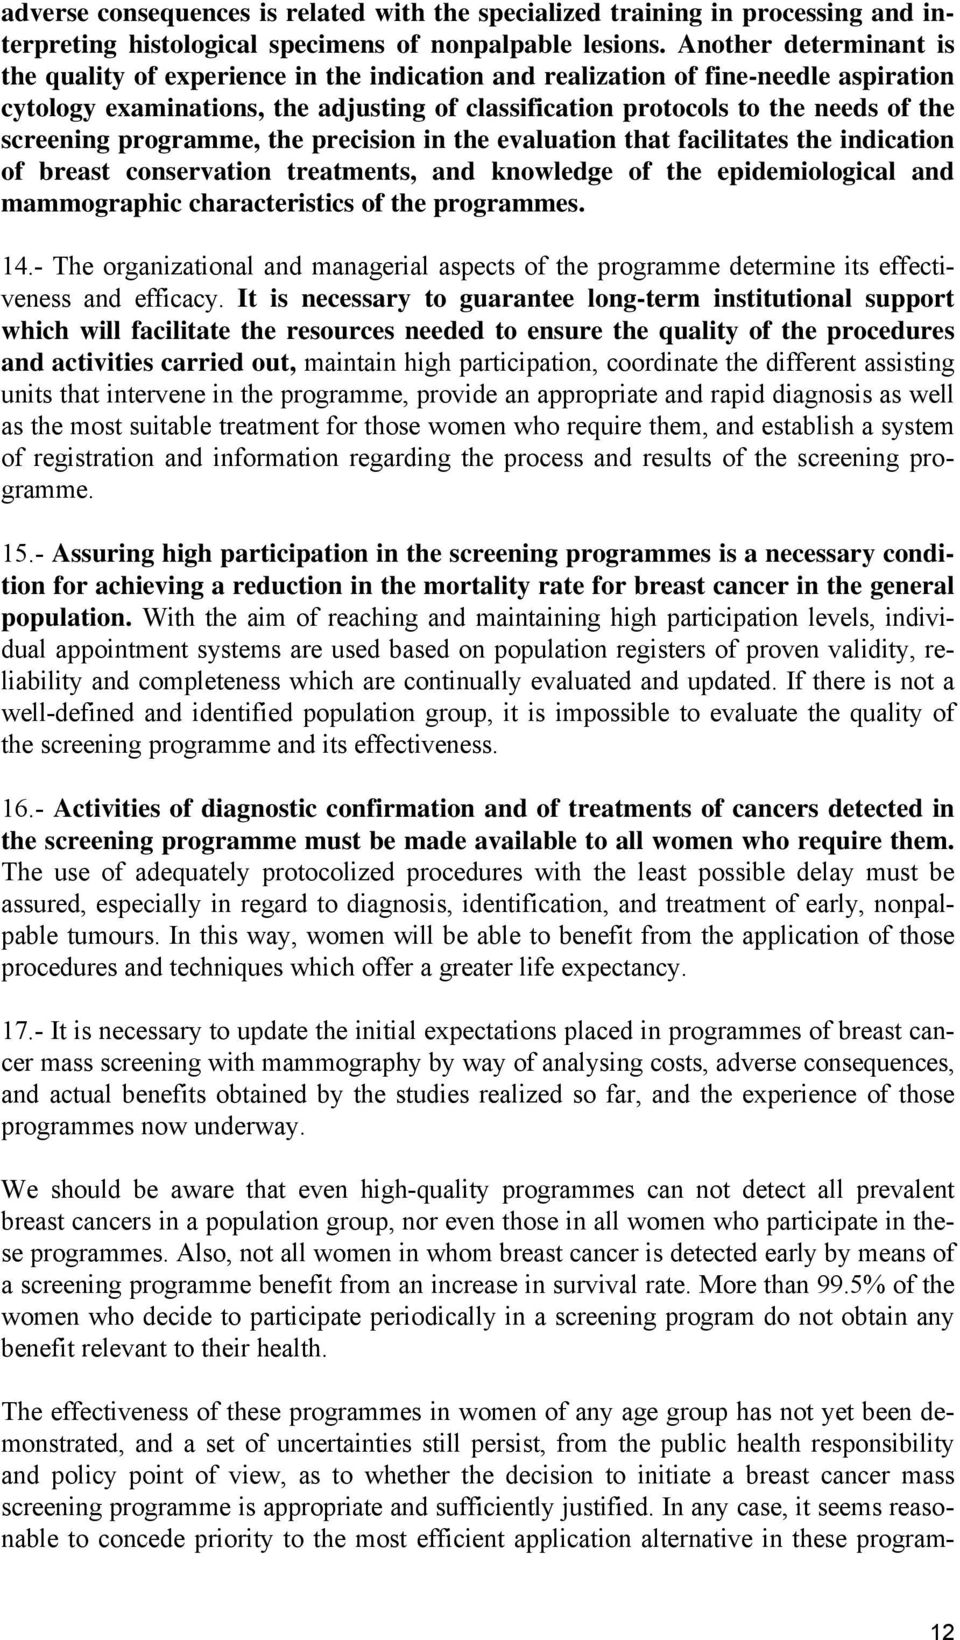 screening programme, the precision in the evaluation that facilitates the indication of breast conservation treatments, and knowledge of the epidemiological and mammographic characteristics of the